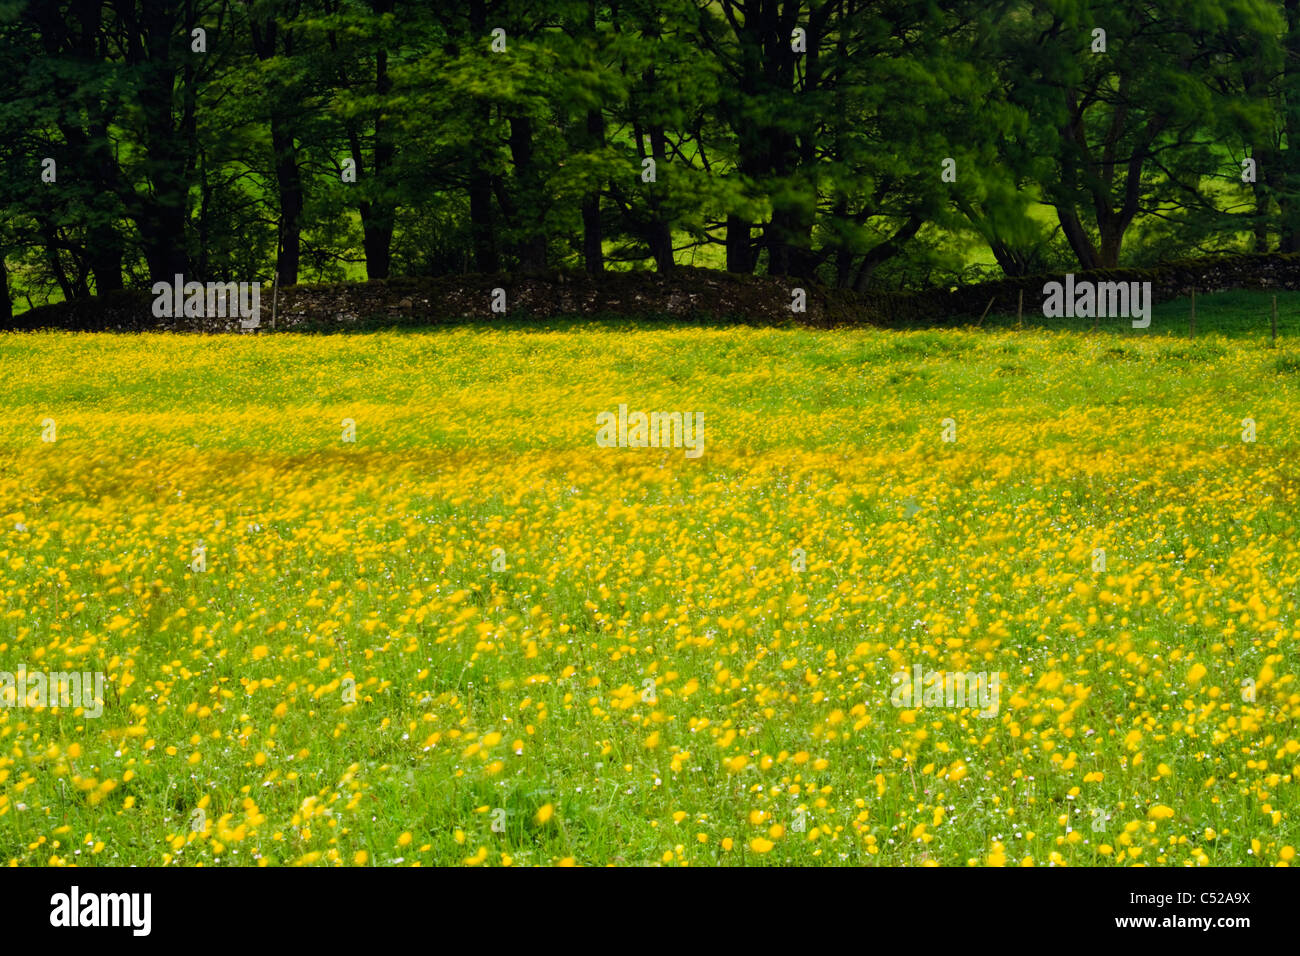 Windblown buttercups in field, Yorkshire Dales National Park, Yorkshire, UK. - Stock Image